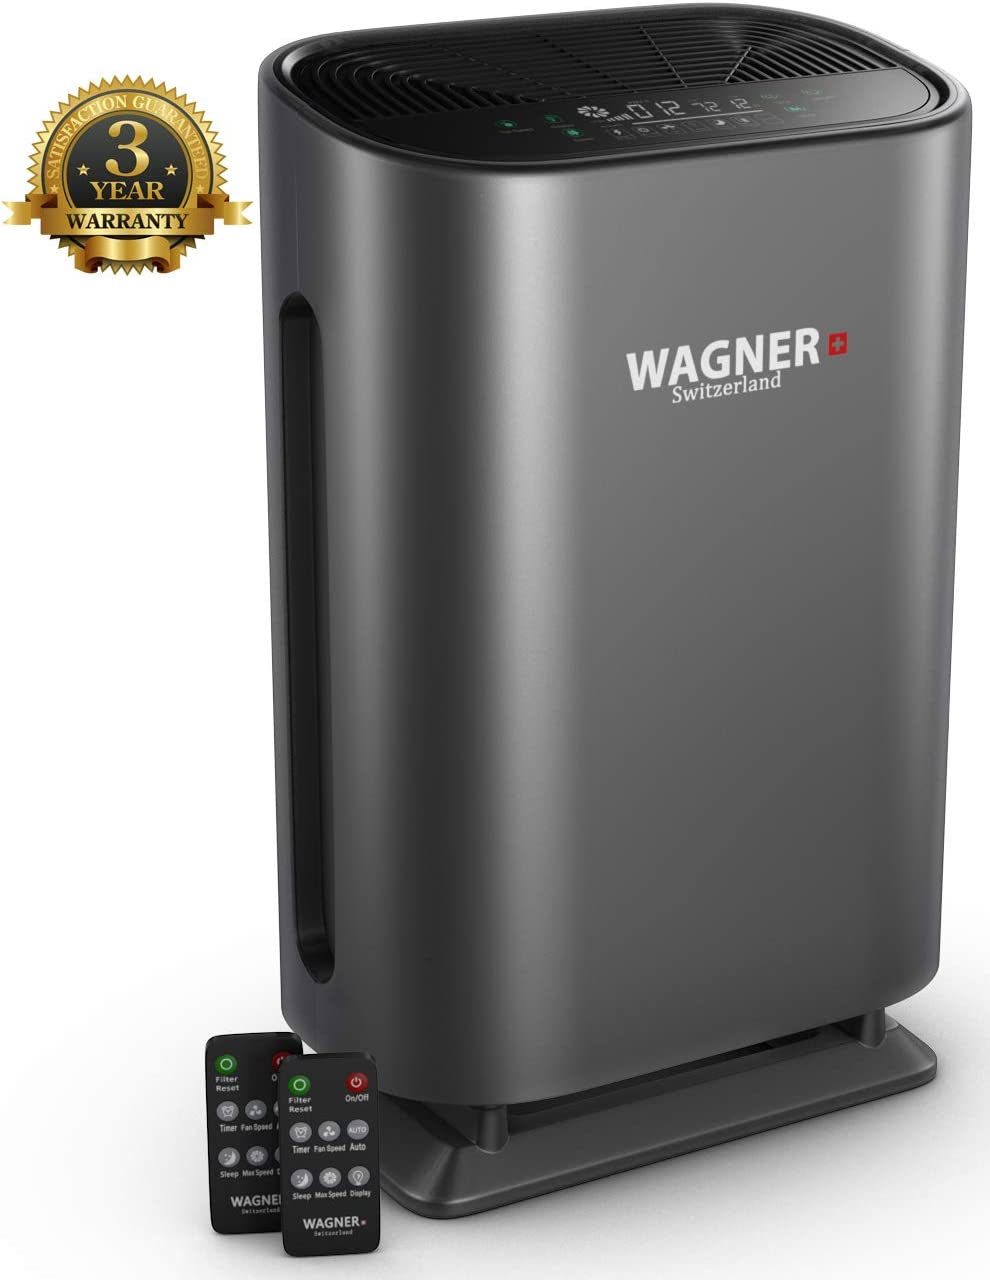 WAGNER Switzerland Air Purifier WA888 HEPA-13 Medical Grade Filter, Particle Sensor for 500 sq.ft. Rooms. Removes Mold, Odors, Smoke, Allergens, Germs and Pet Dander, etc..